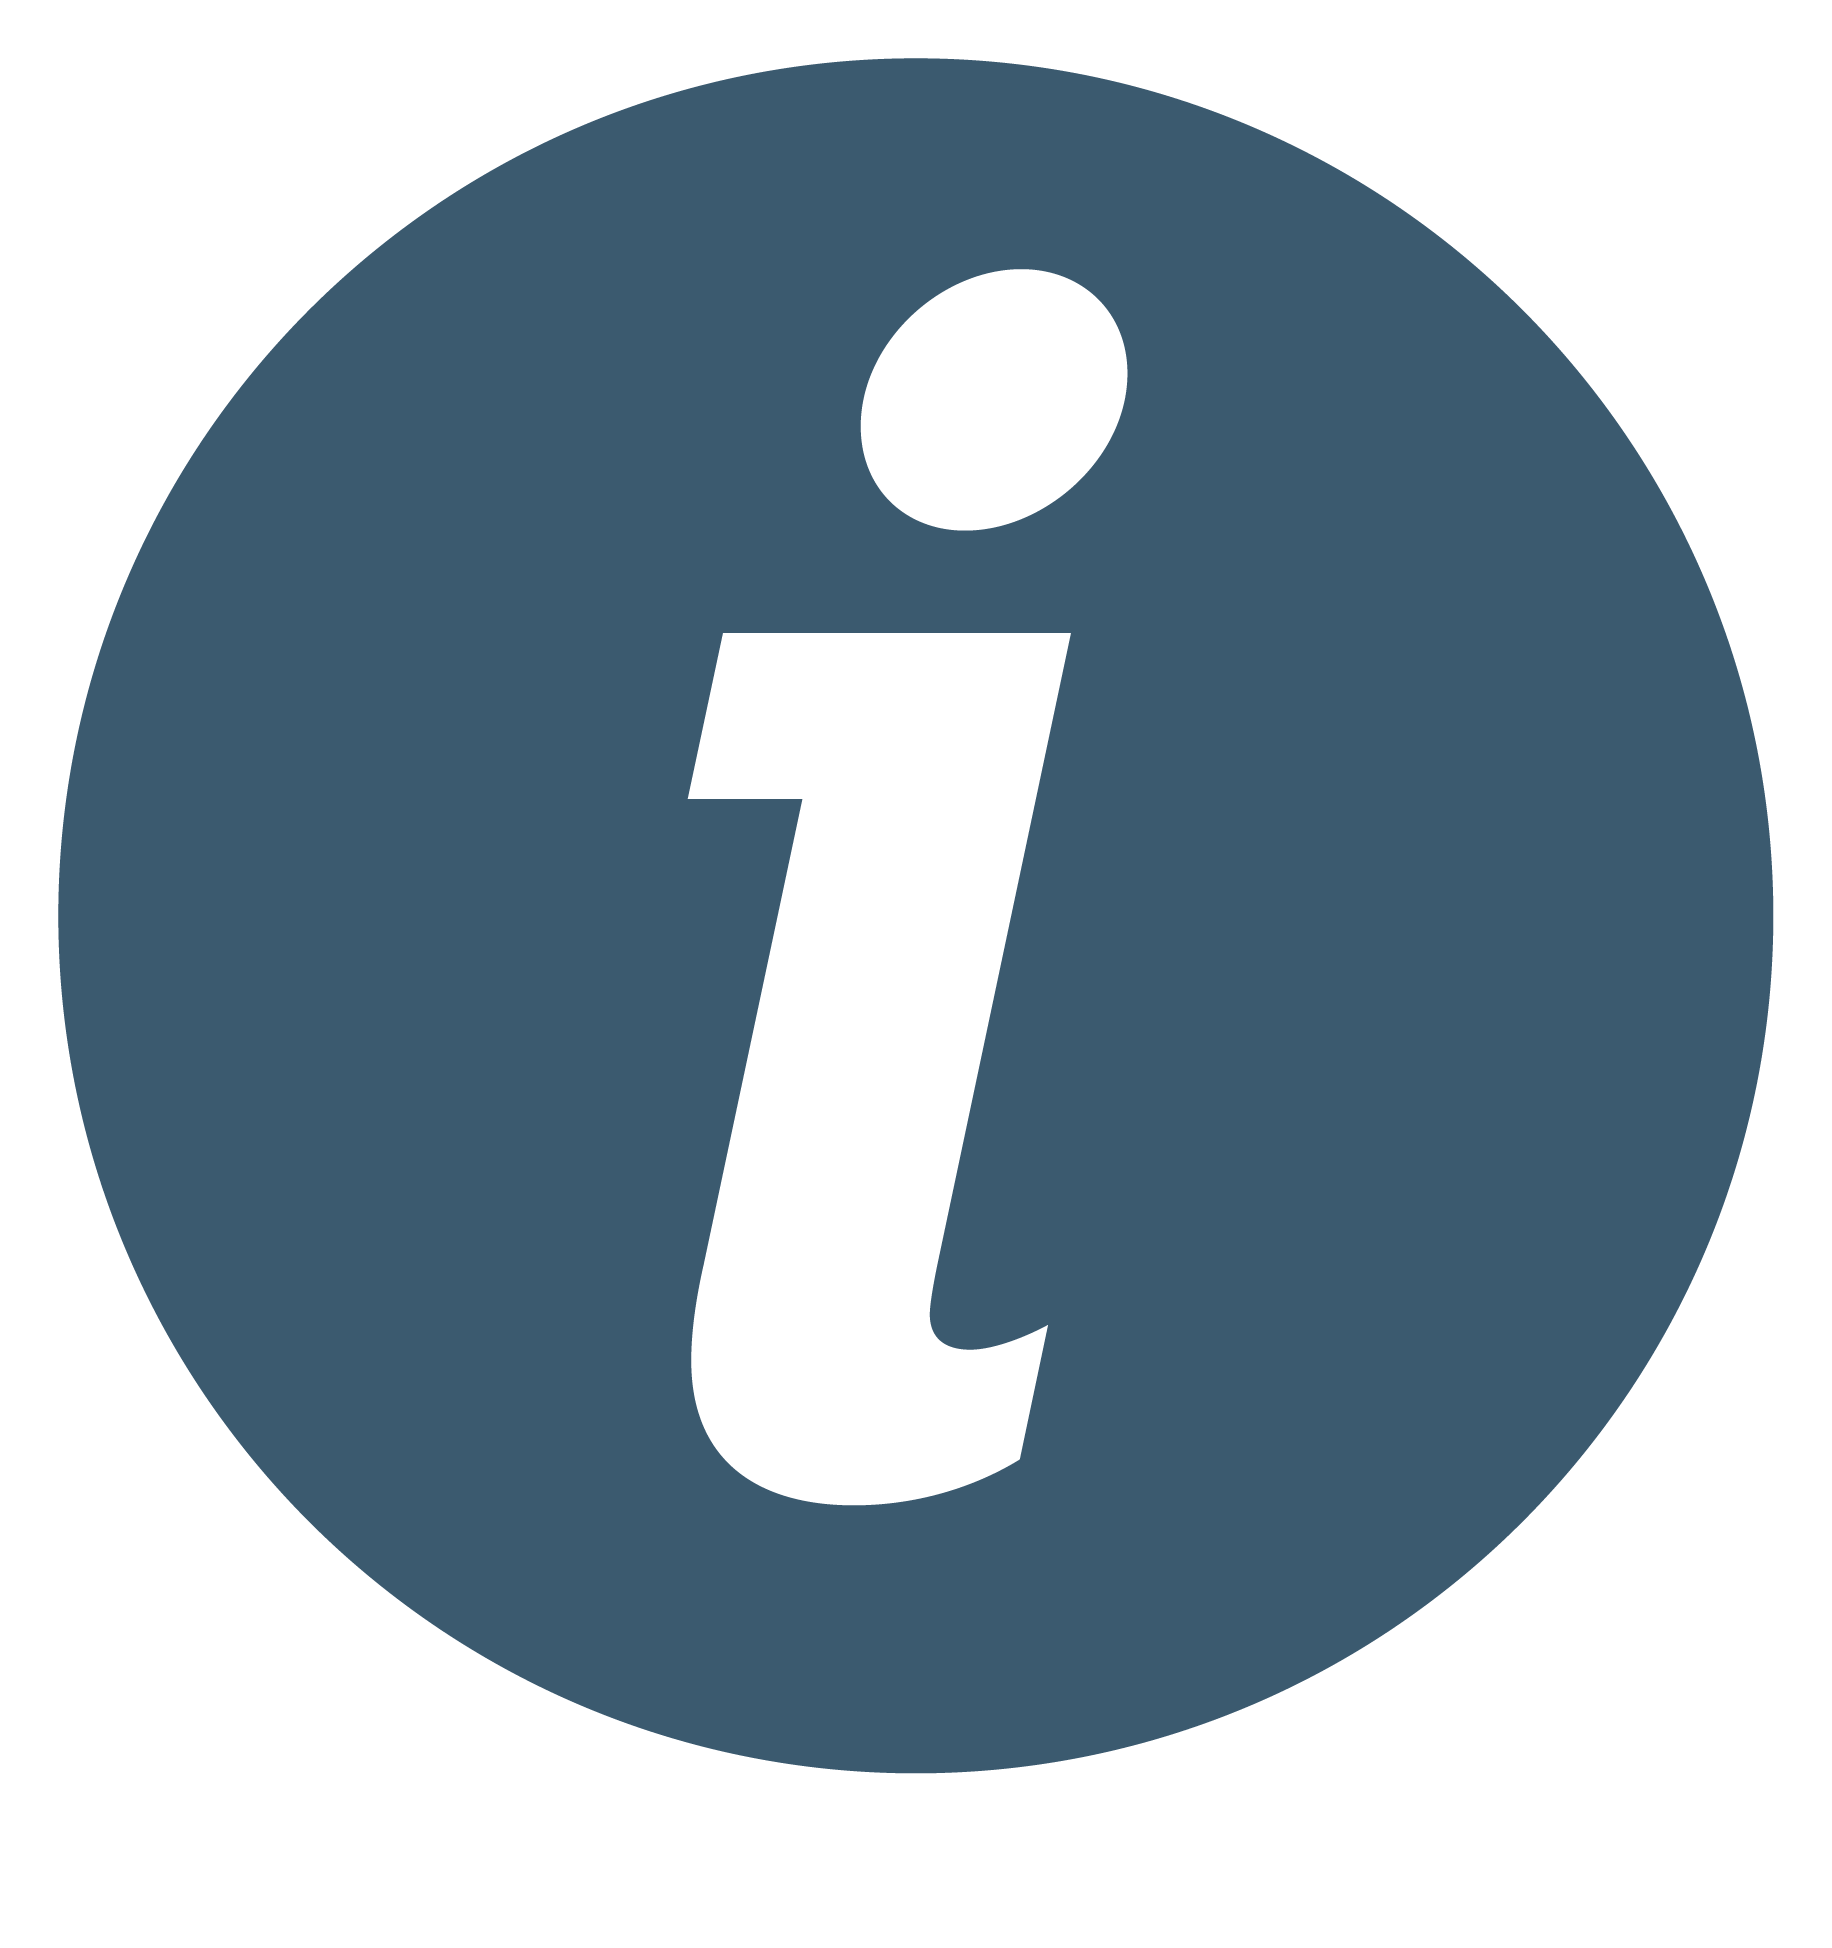 Information Icon Image #6058 - Information, Transparent background PNG HD thumbnail